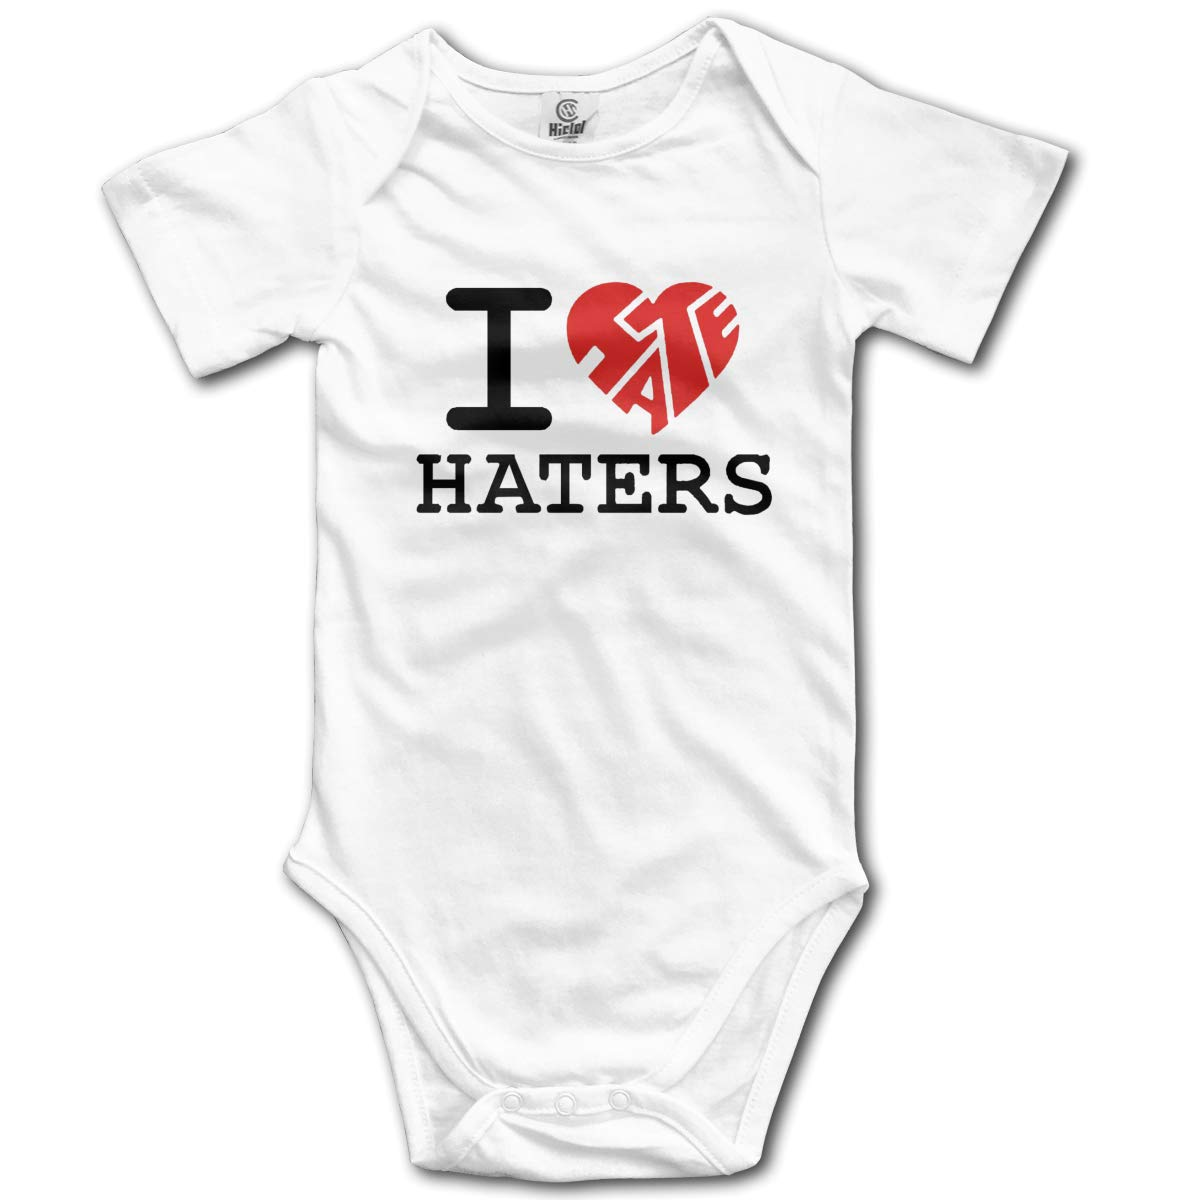 I Love Haters Baby Romper 0-18 Months Newborn Baby Girls Boys Layette Rompers White